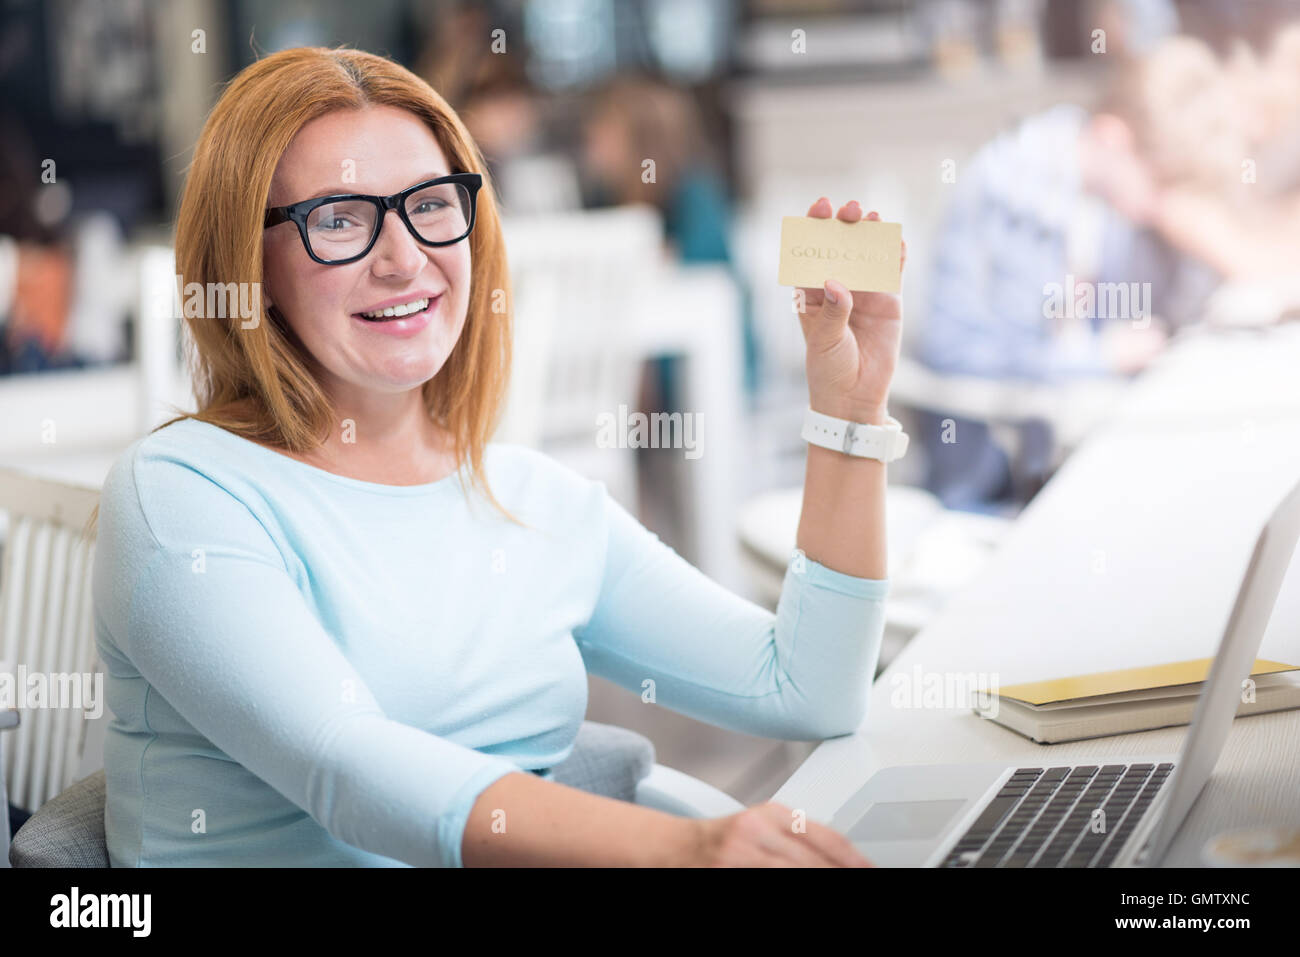 Joyful woman holding gold card - Stock Image